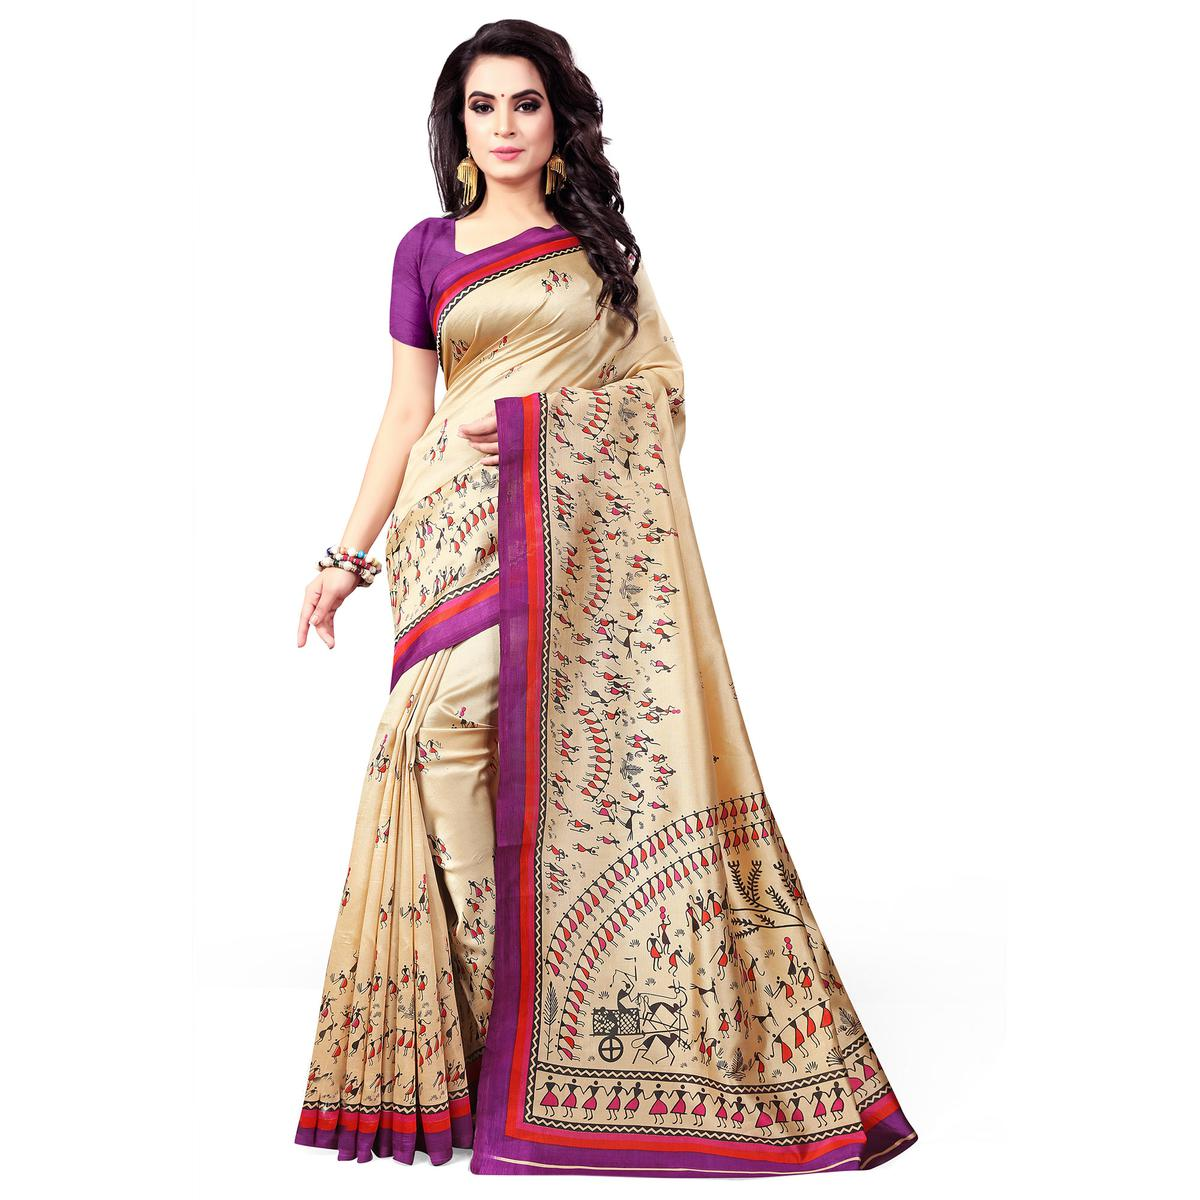 Glowing Cream-Purple Colored Casual Wear Printed Bhagalpuri Silk Saree